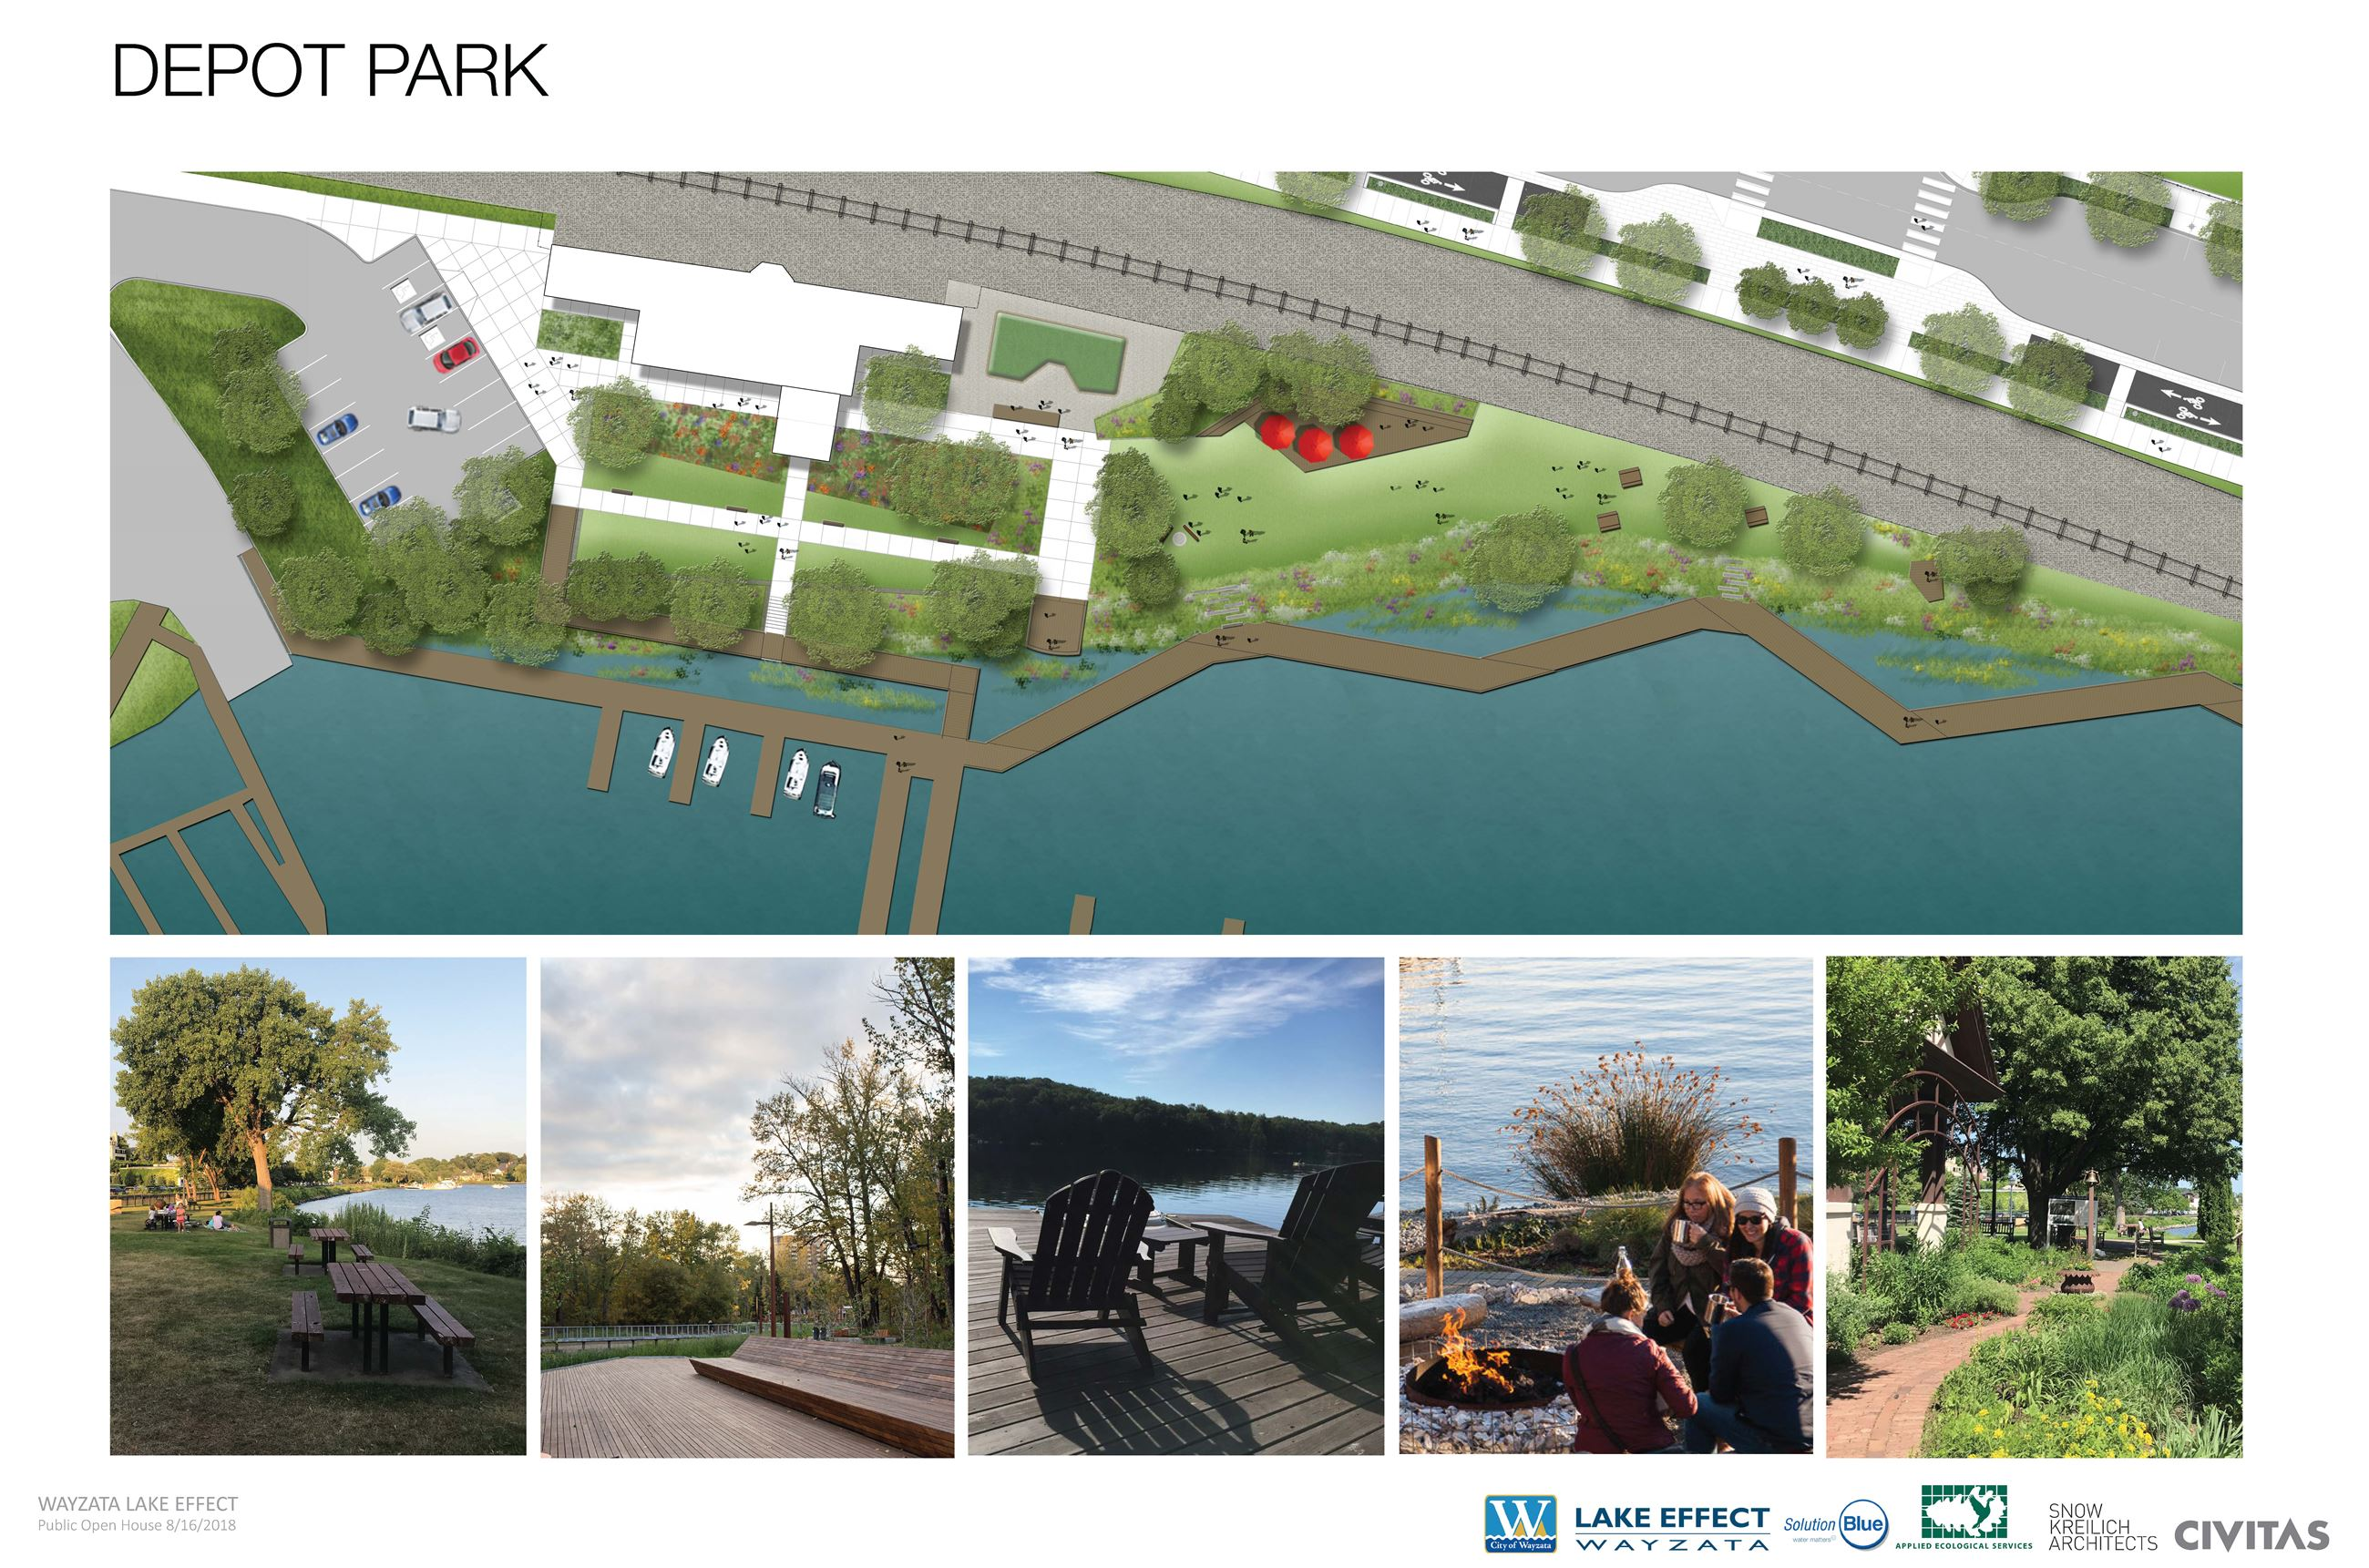 Deopt Park Plan and Images